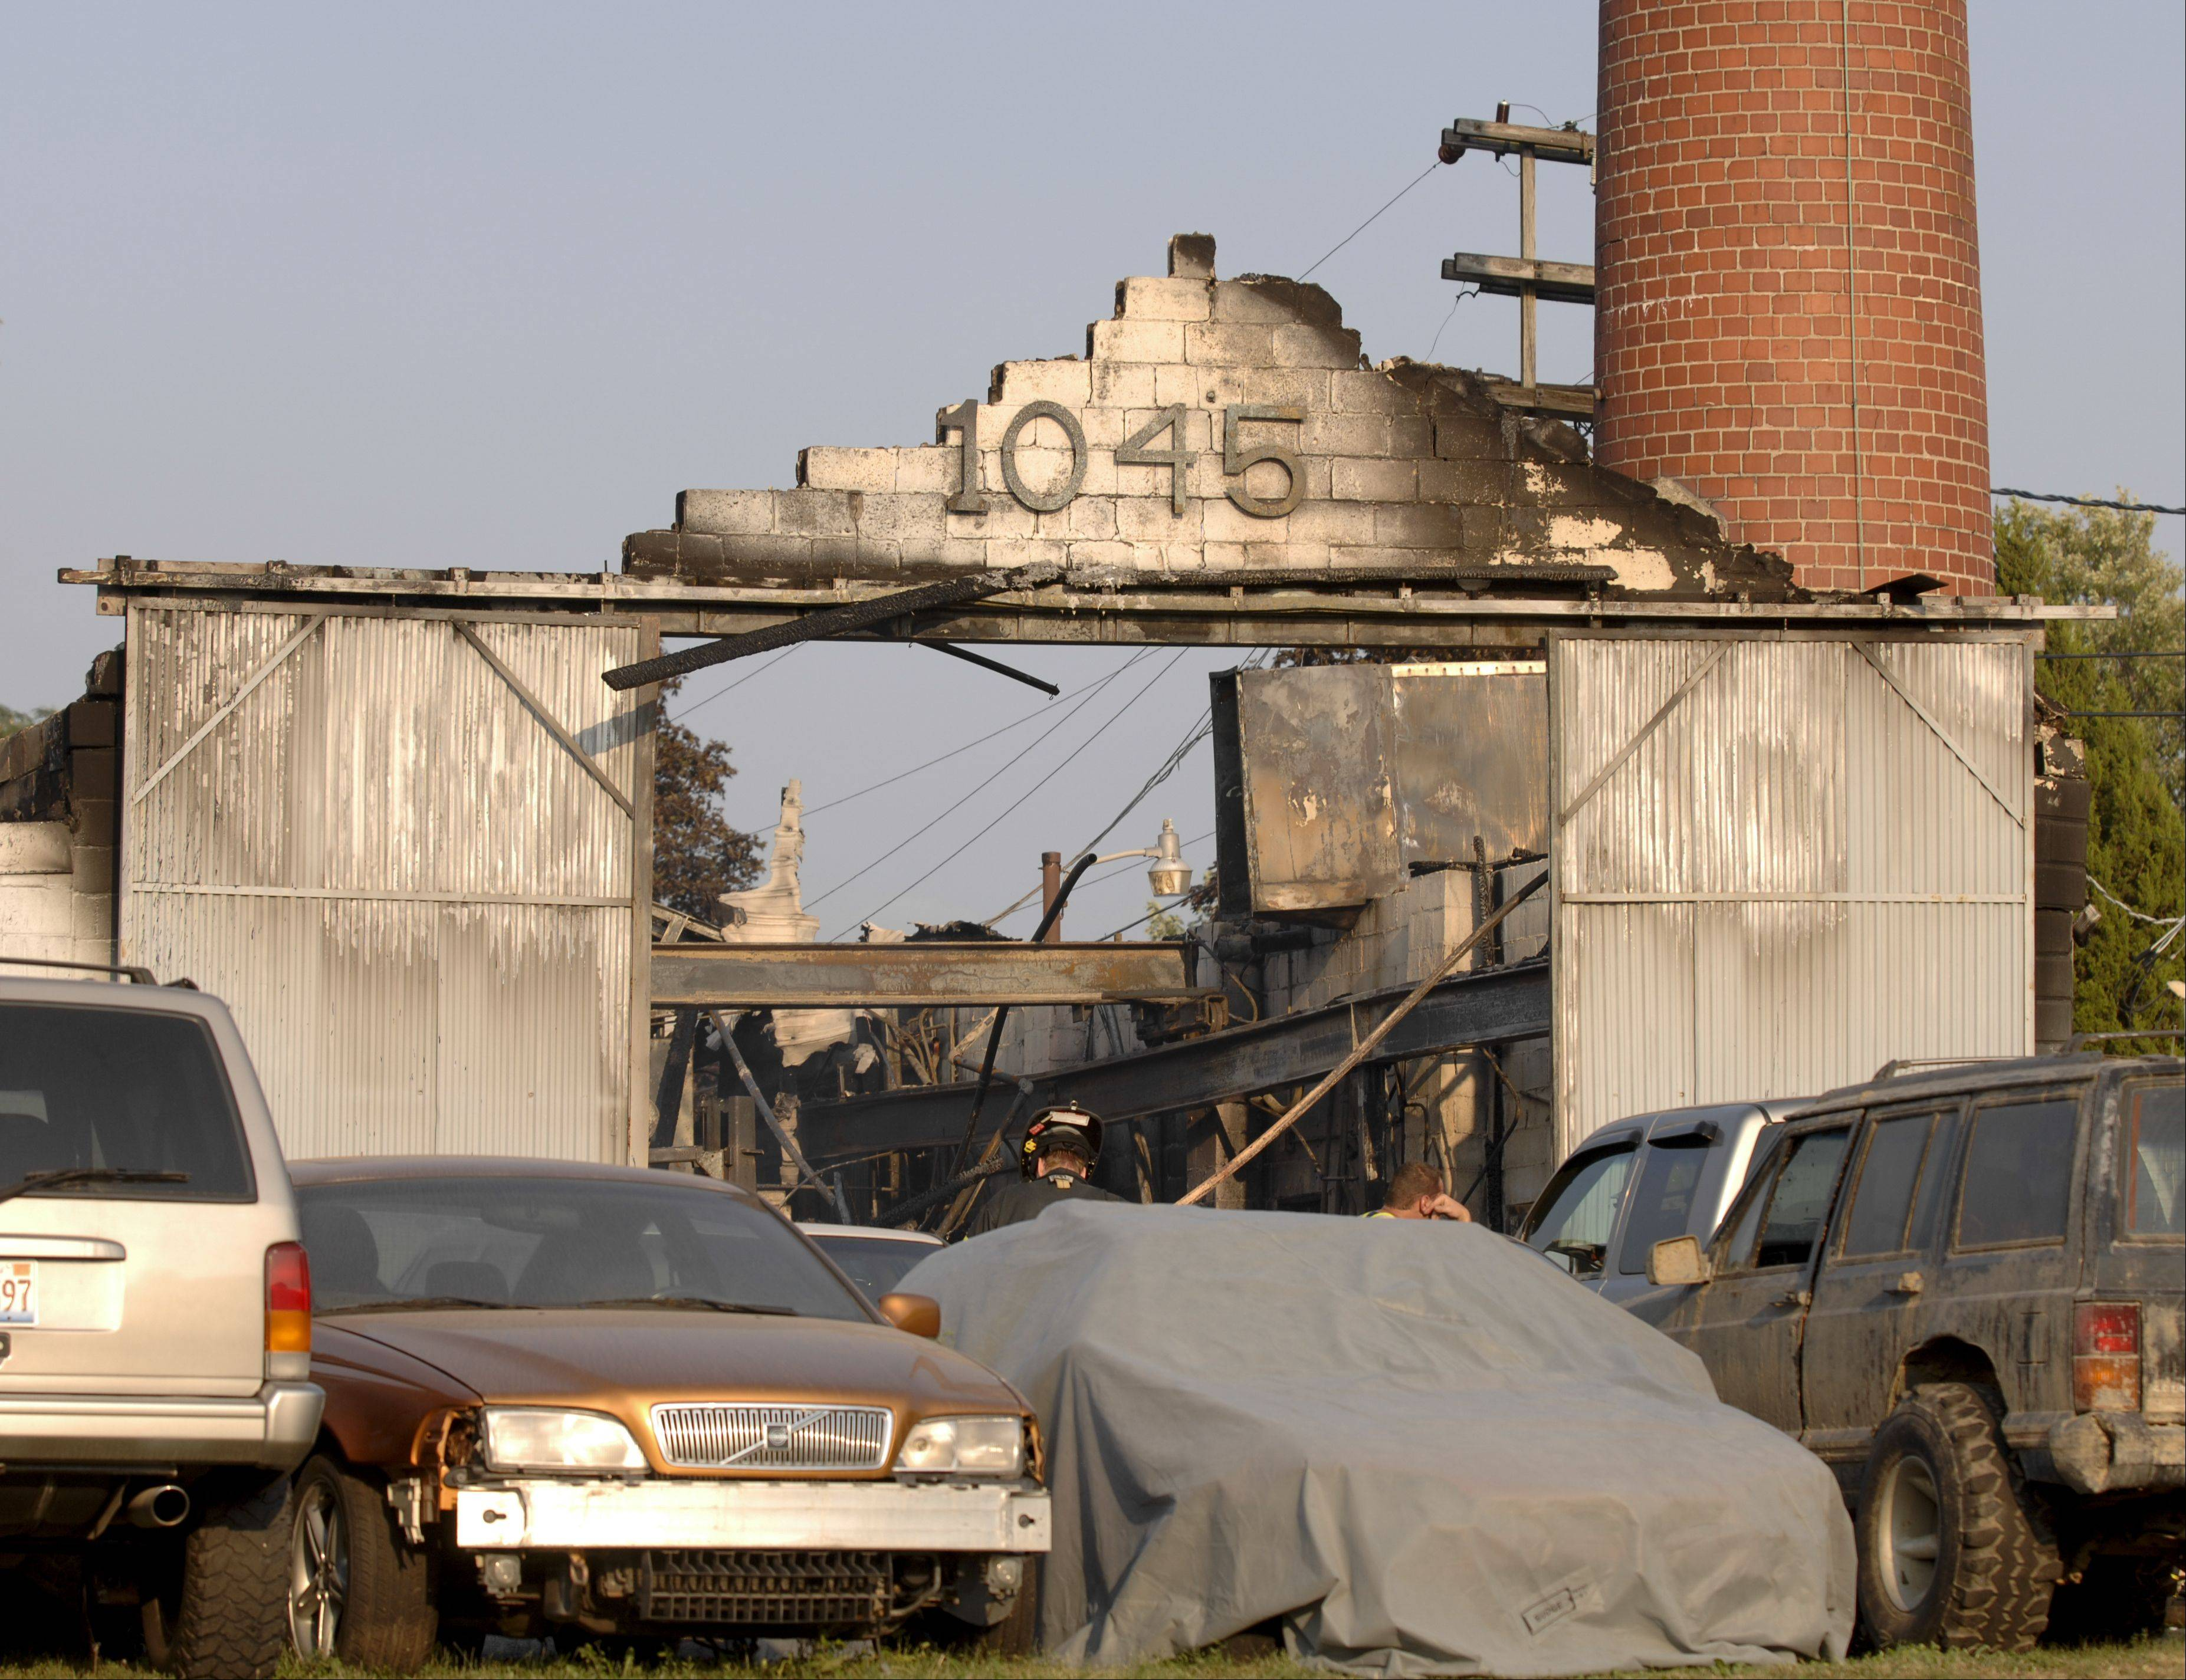 One civilian was injured in Wednesday's blaze in an industrial building at 1045 Westgate St. in Addison.